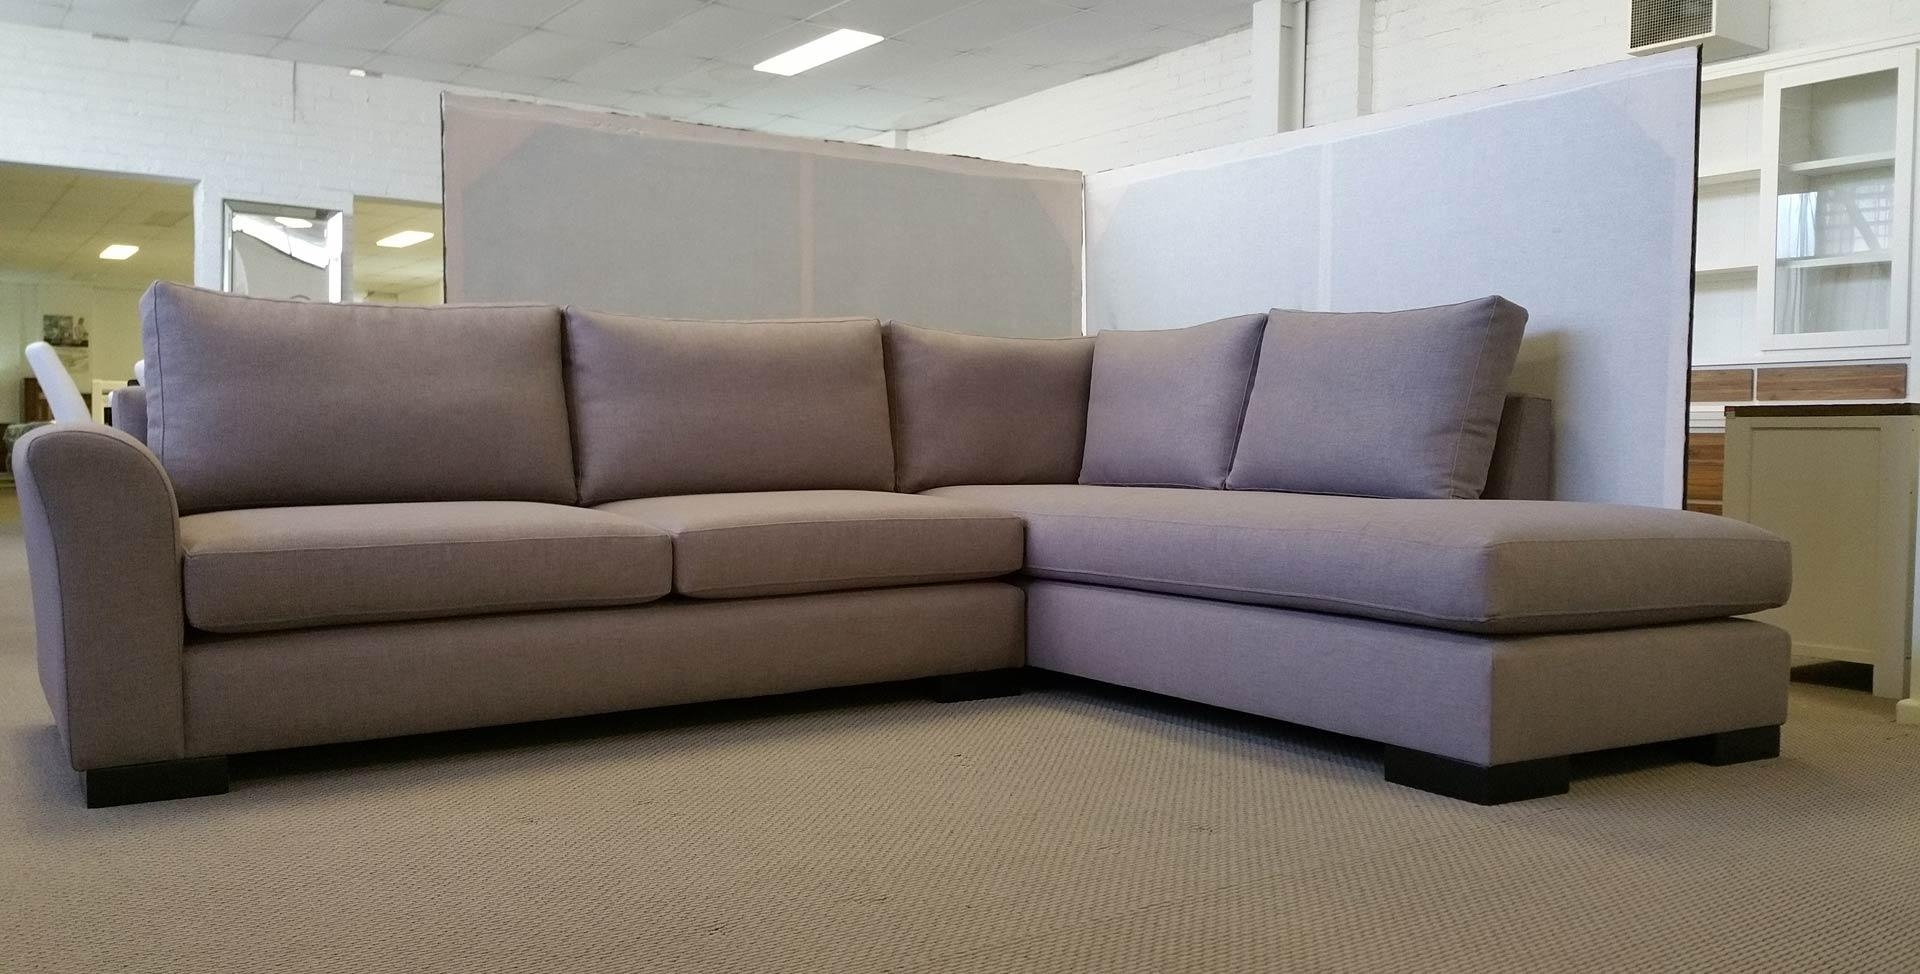 Euro Sofa Direct Pty Ltd In Euro Sofas (View 2 of 20)